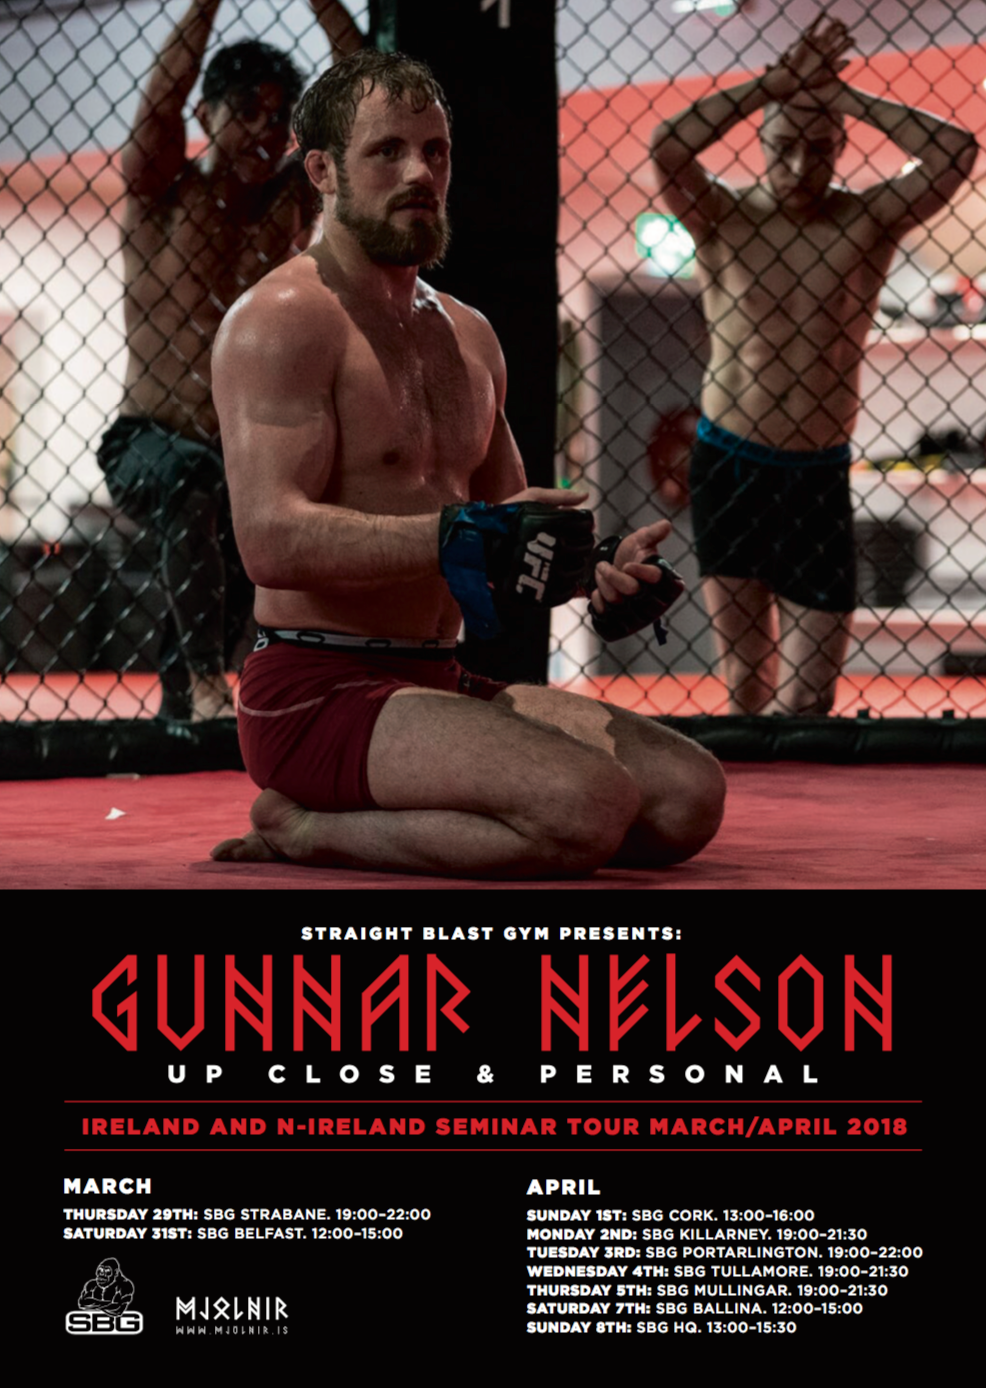 Gunnar Nelson seminar tour in Ireland